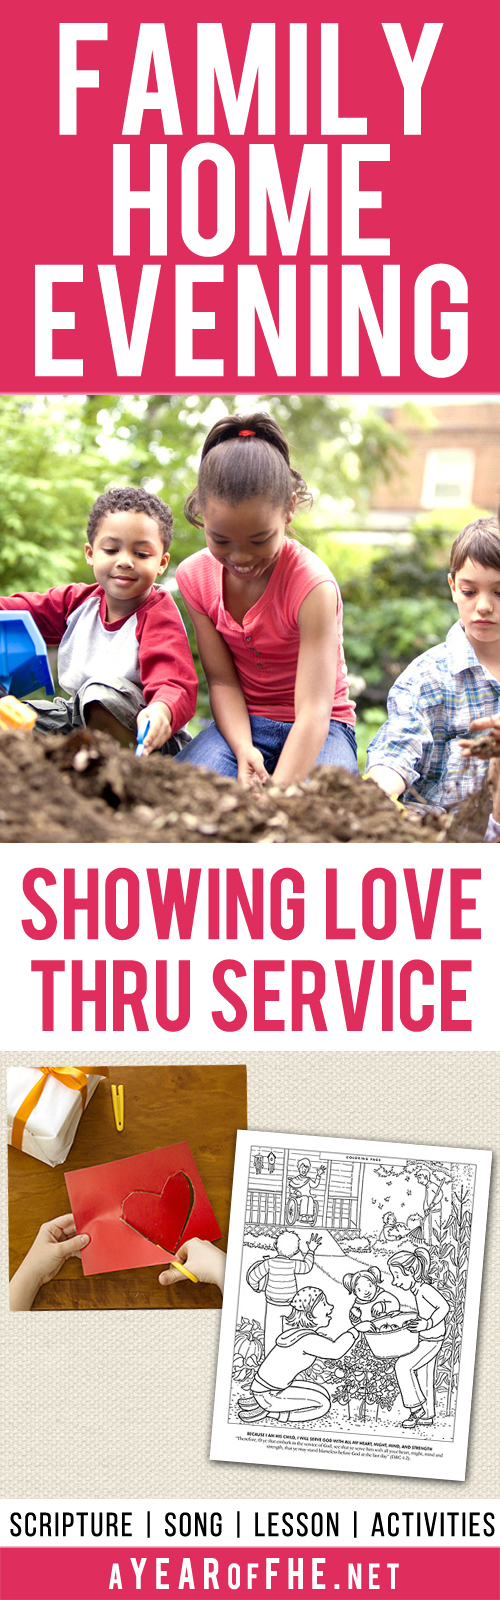 A Year of FHE: Year 01/Lesson 05: Showing Love through Service